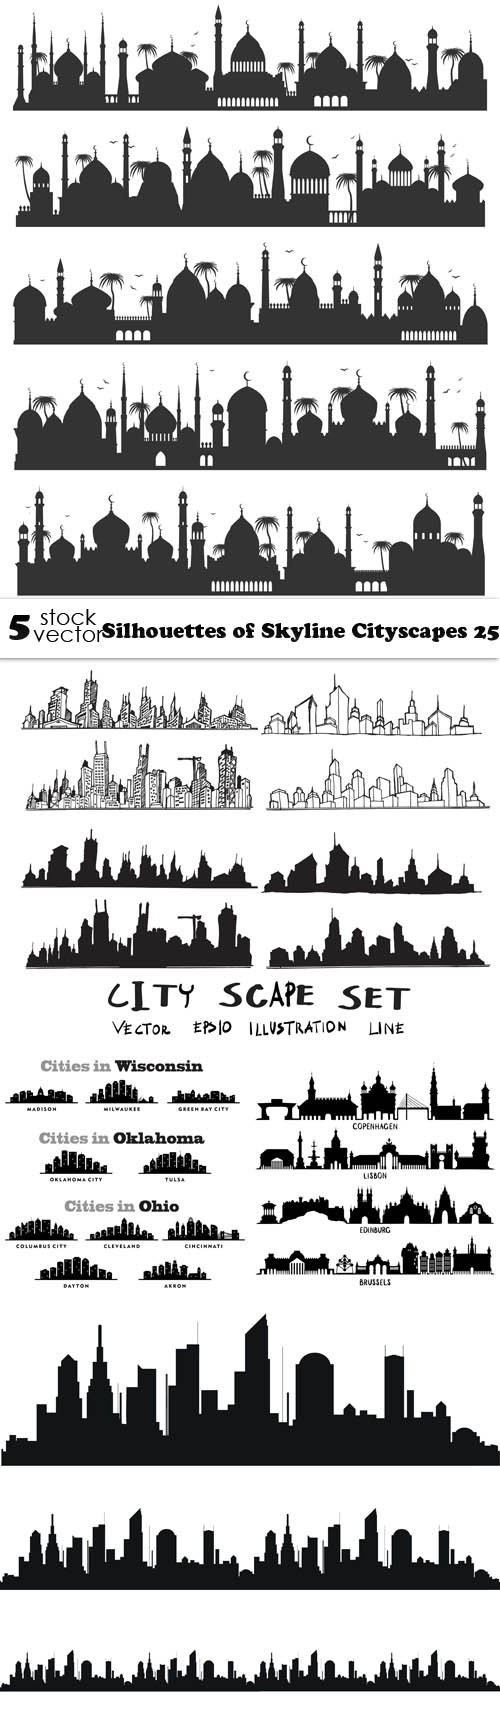 Vectors - Silhouettes of Skyline Cityscapes 25